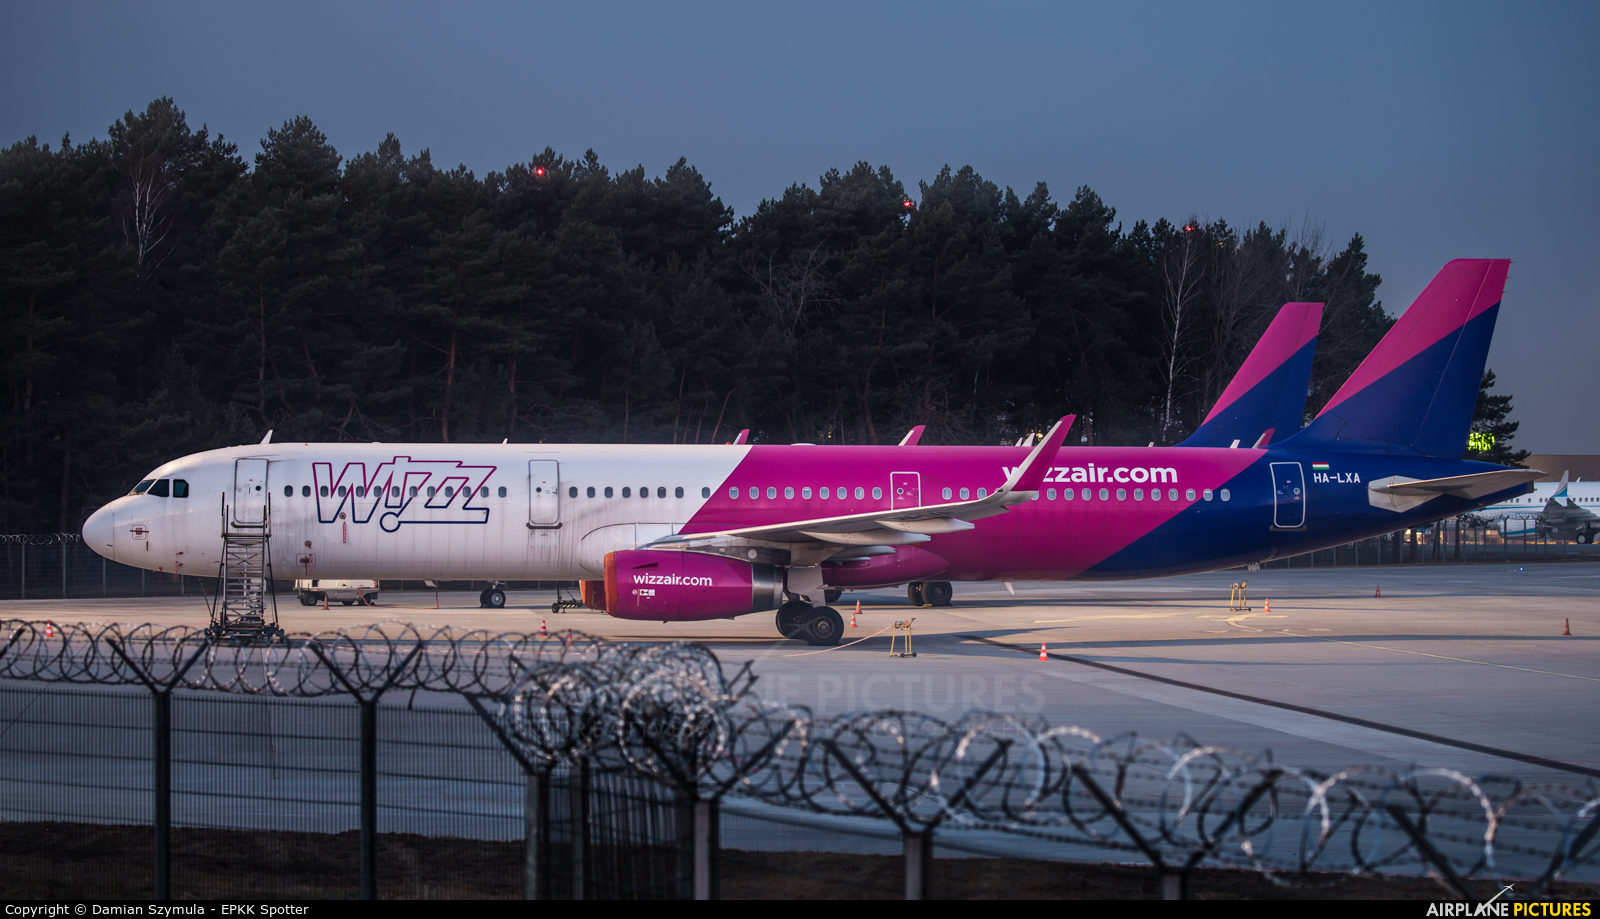 Wizz Air HA-LXA aircraft at Katowice - Pyrzowice